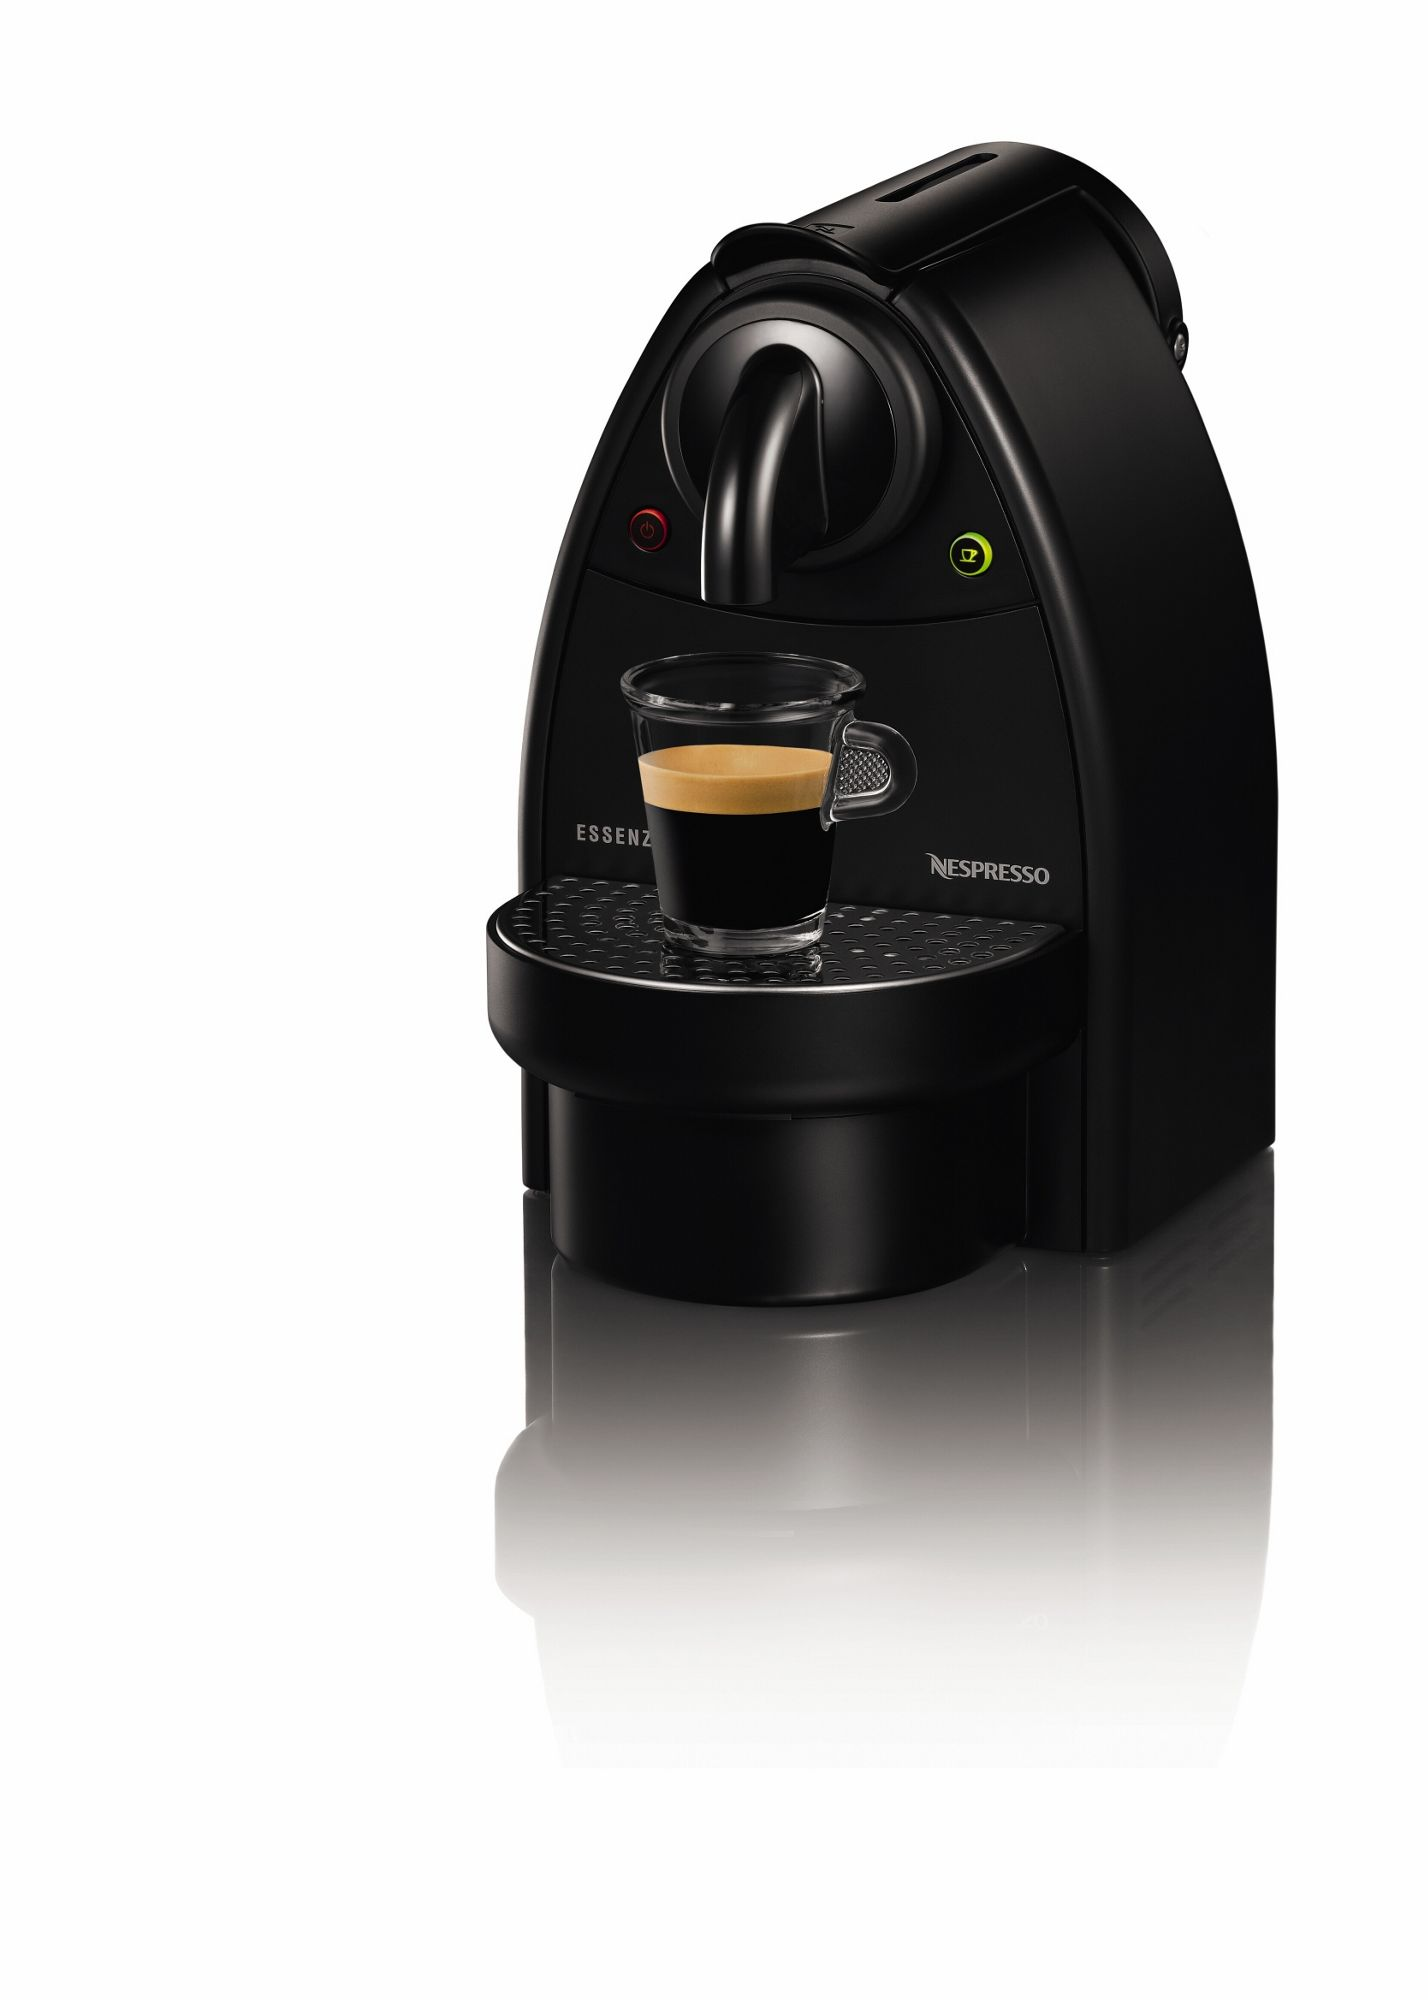 nescafe nespresso essenza by krups xn200340 coffee machine 19 bar pressure black ebay. Black Bedroom Furniture Sets. Home Design Ideas